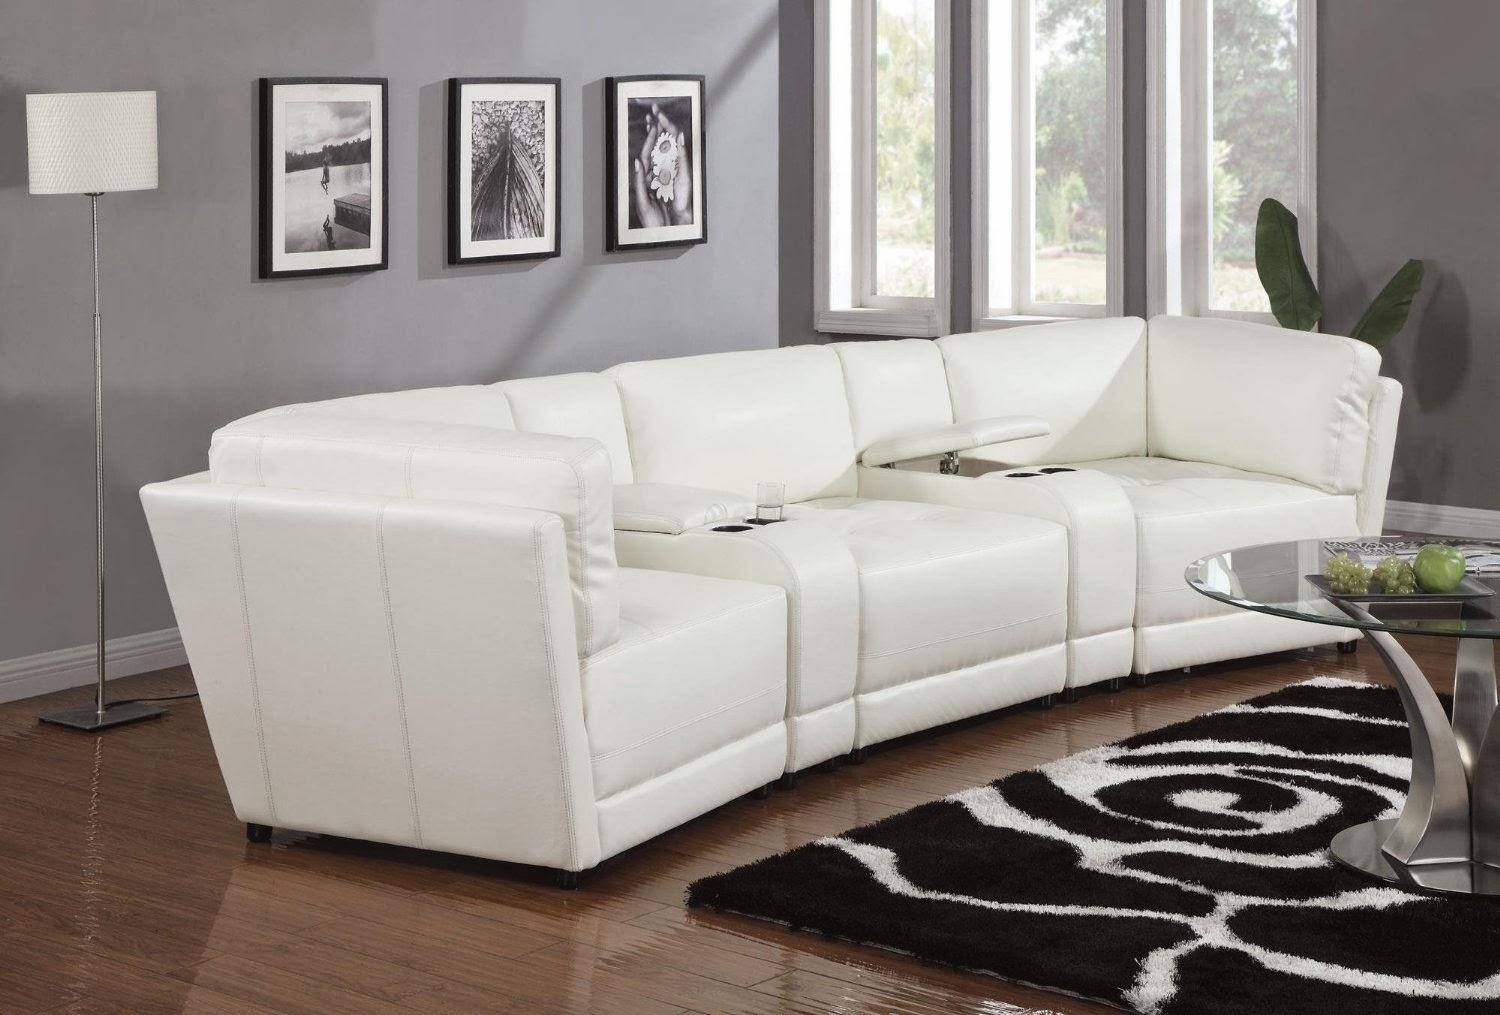 Sectional Sofas Vancouver Bc | Conceptstructuresllc Within Vancouver Bc Canada Sectional Sofas (Image 7 of 10)